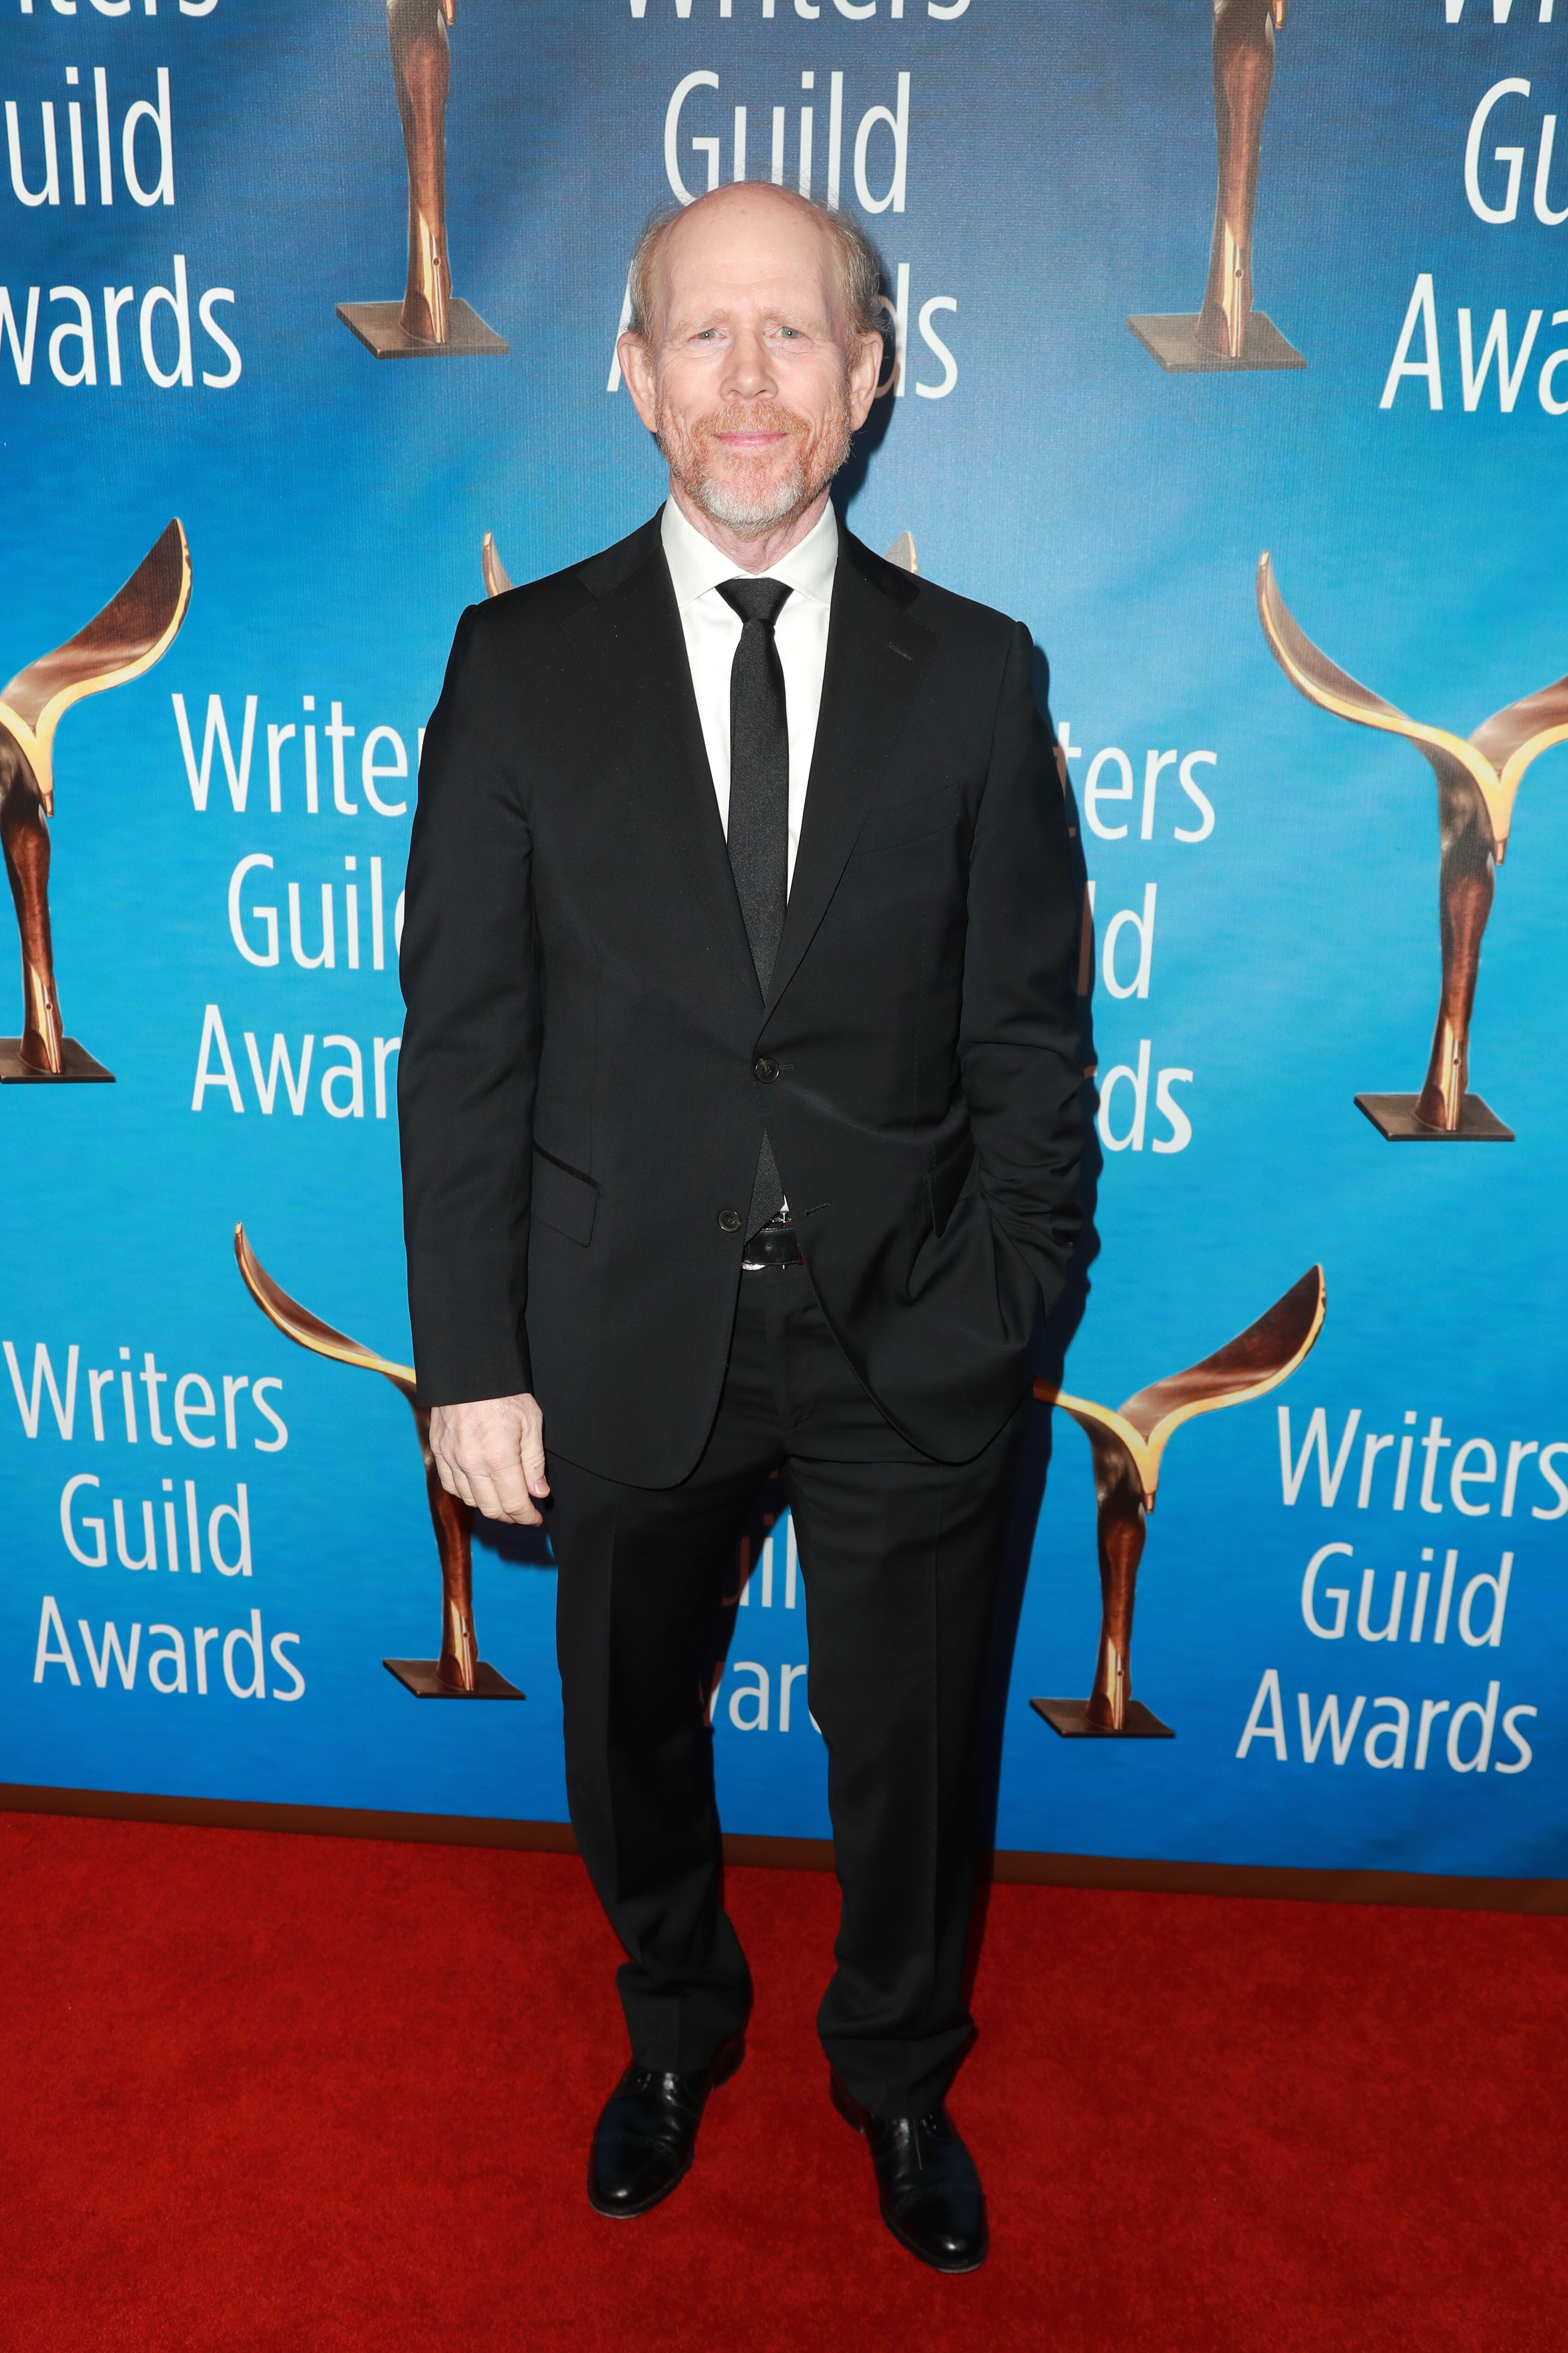 Ron Howard at the 2019 Writers Guild Awards on February 17, 2019. | Source: Getty Images